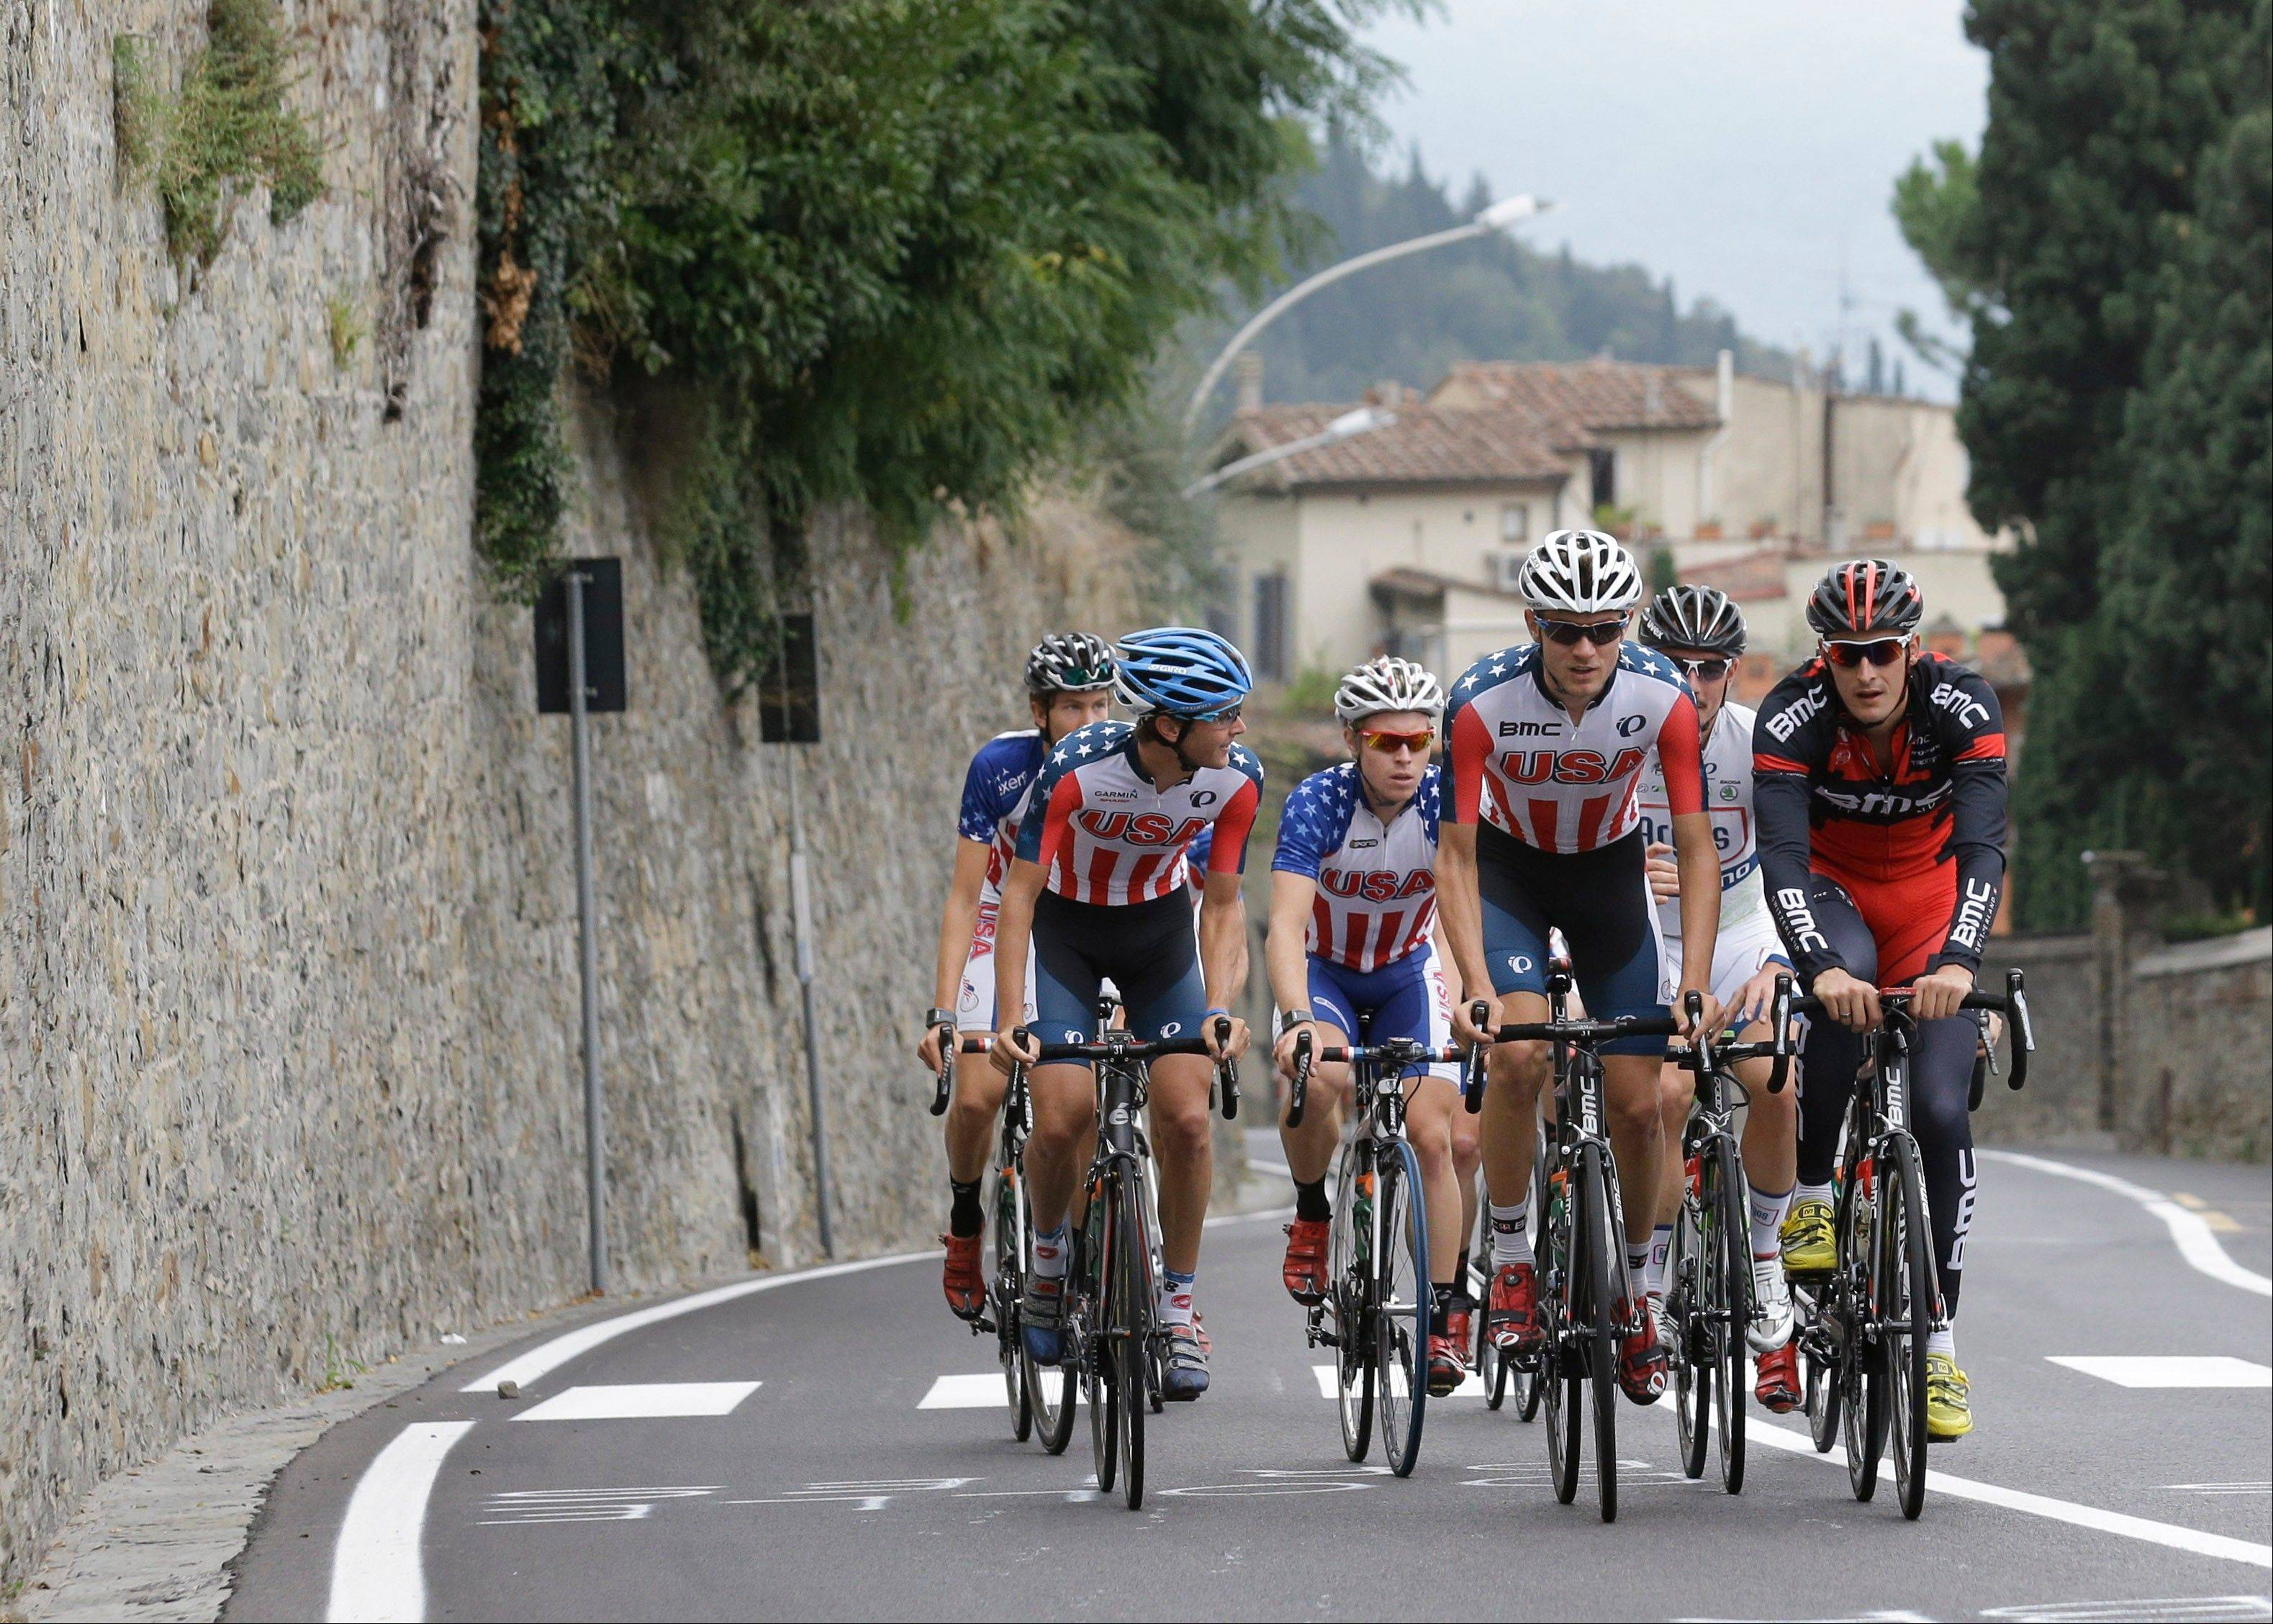 American cyclist Tejay van Garderen, second from right, trains with his teammates during a no-race day at the road cycling world championships Thursday in near Florence, Italy.